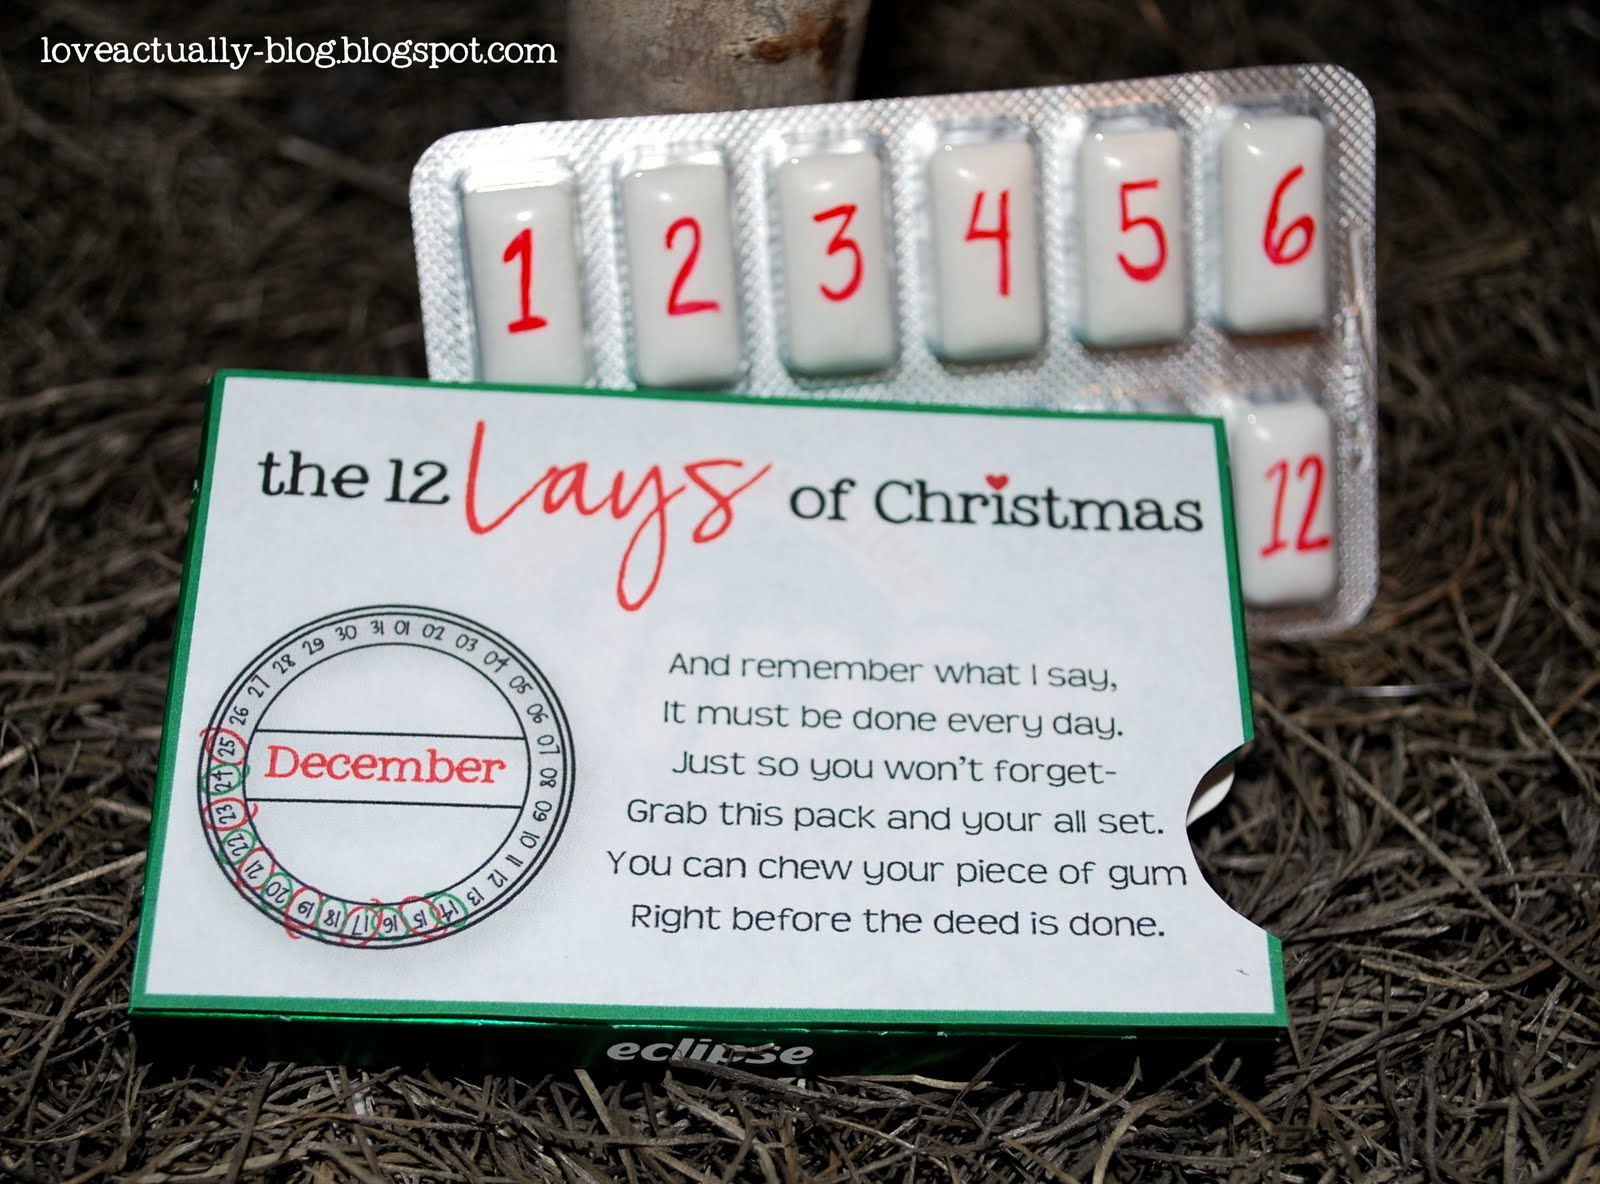 Husband To Be Gift: Love, Actually: The 12 Lays Of Christmas